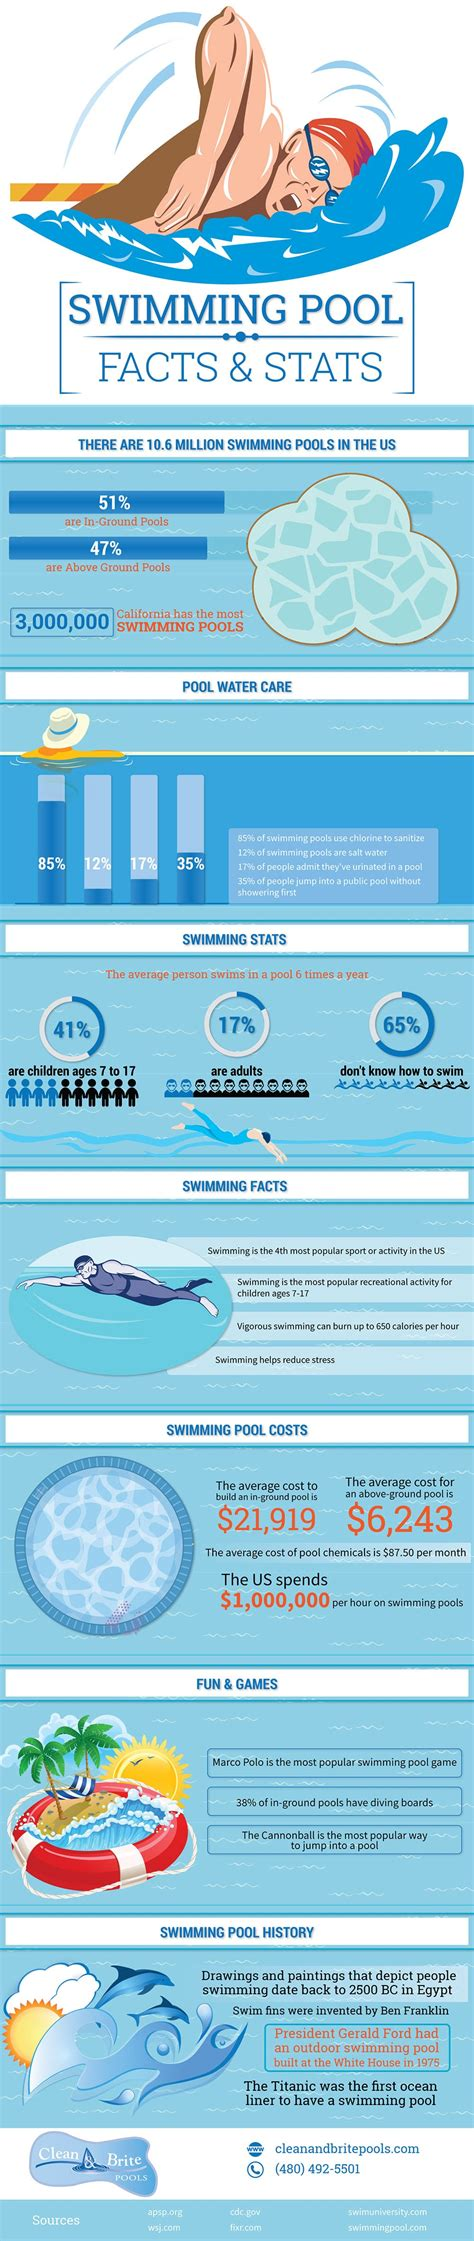 Swimming Pool Facts And Stats  Clean & Brite Pools